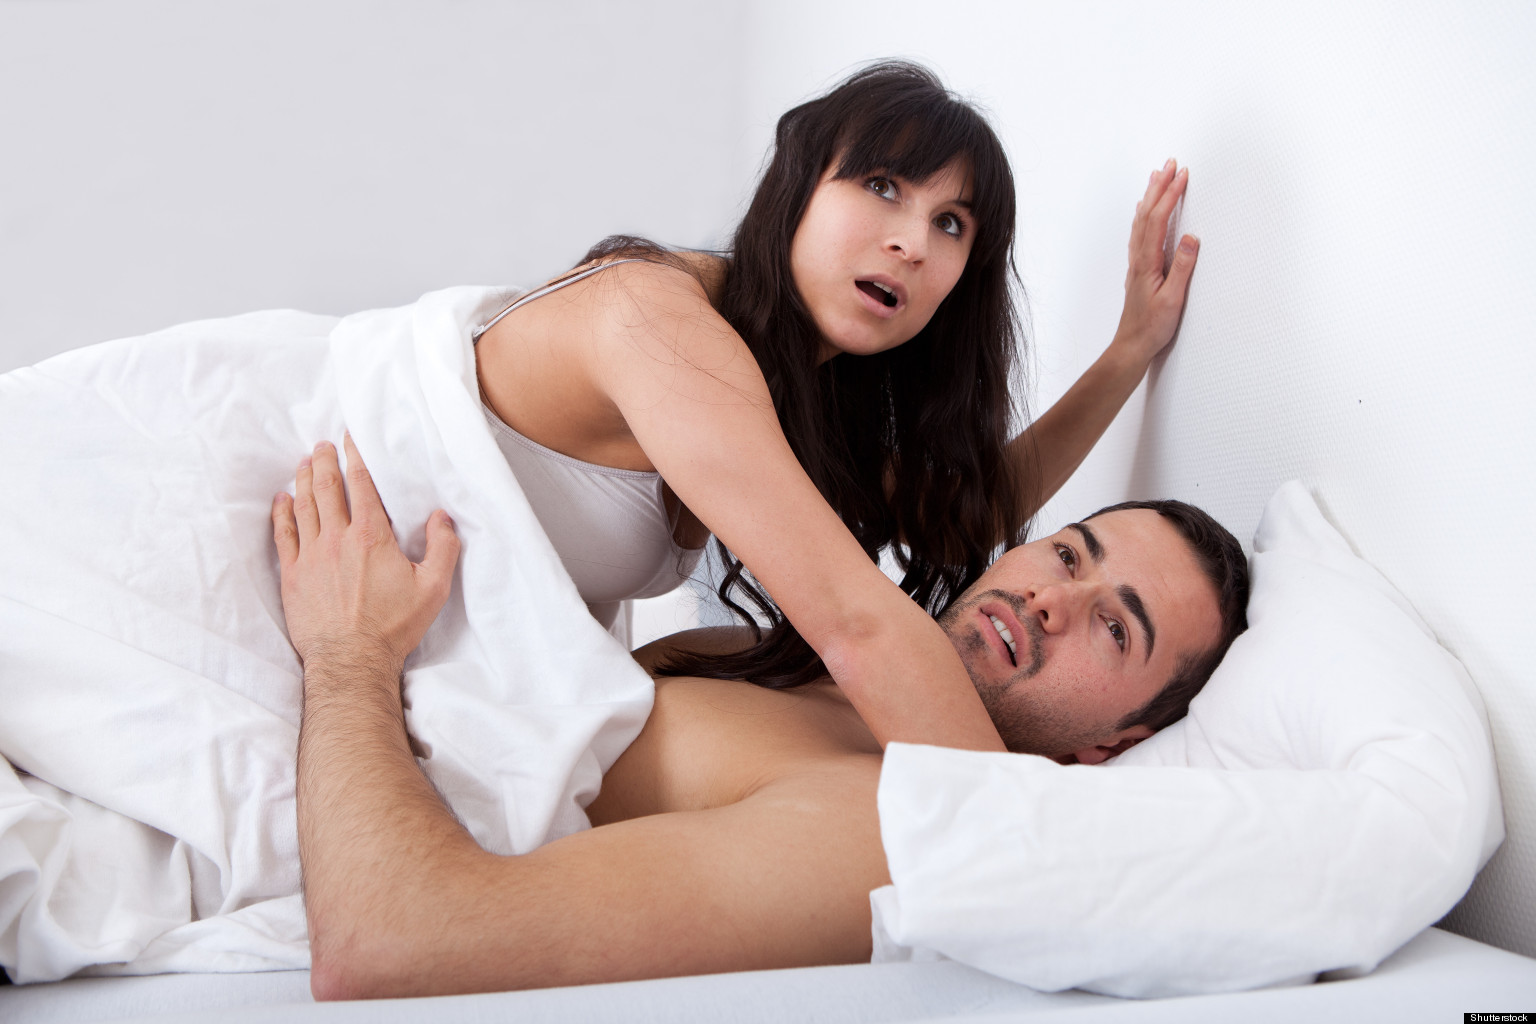 Pregnant couples having sex remarkable